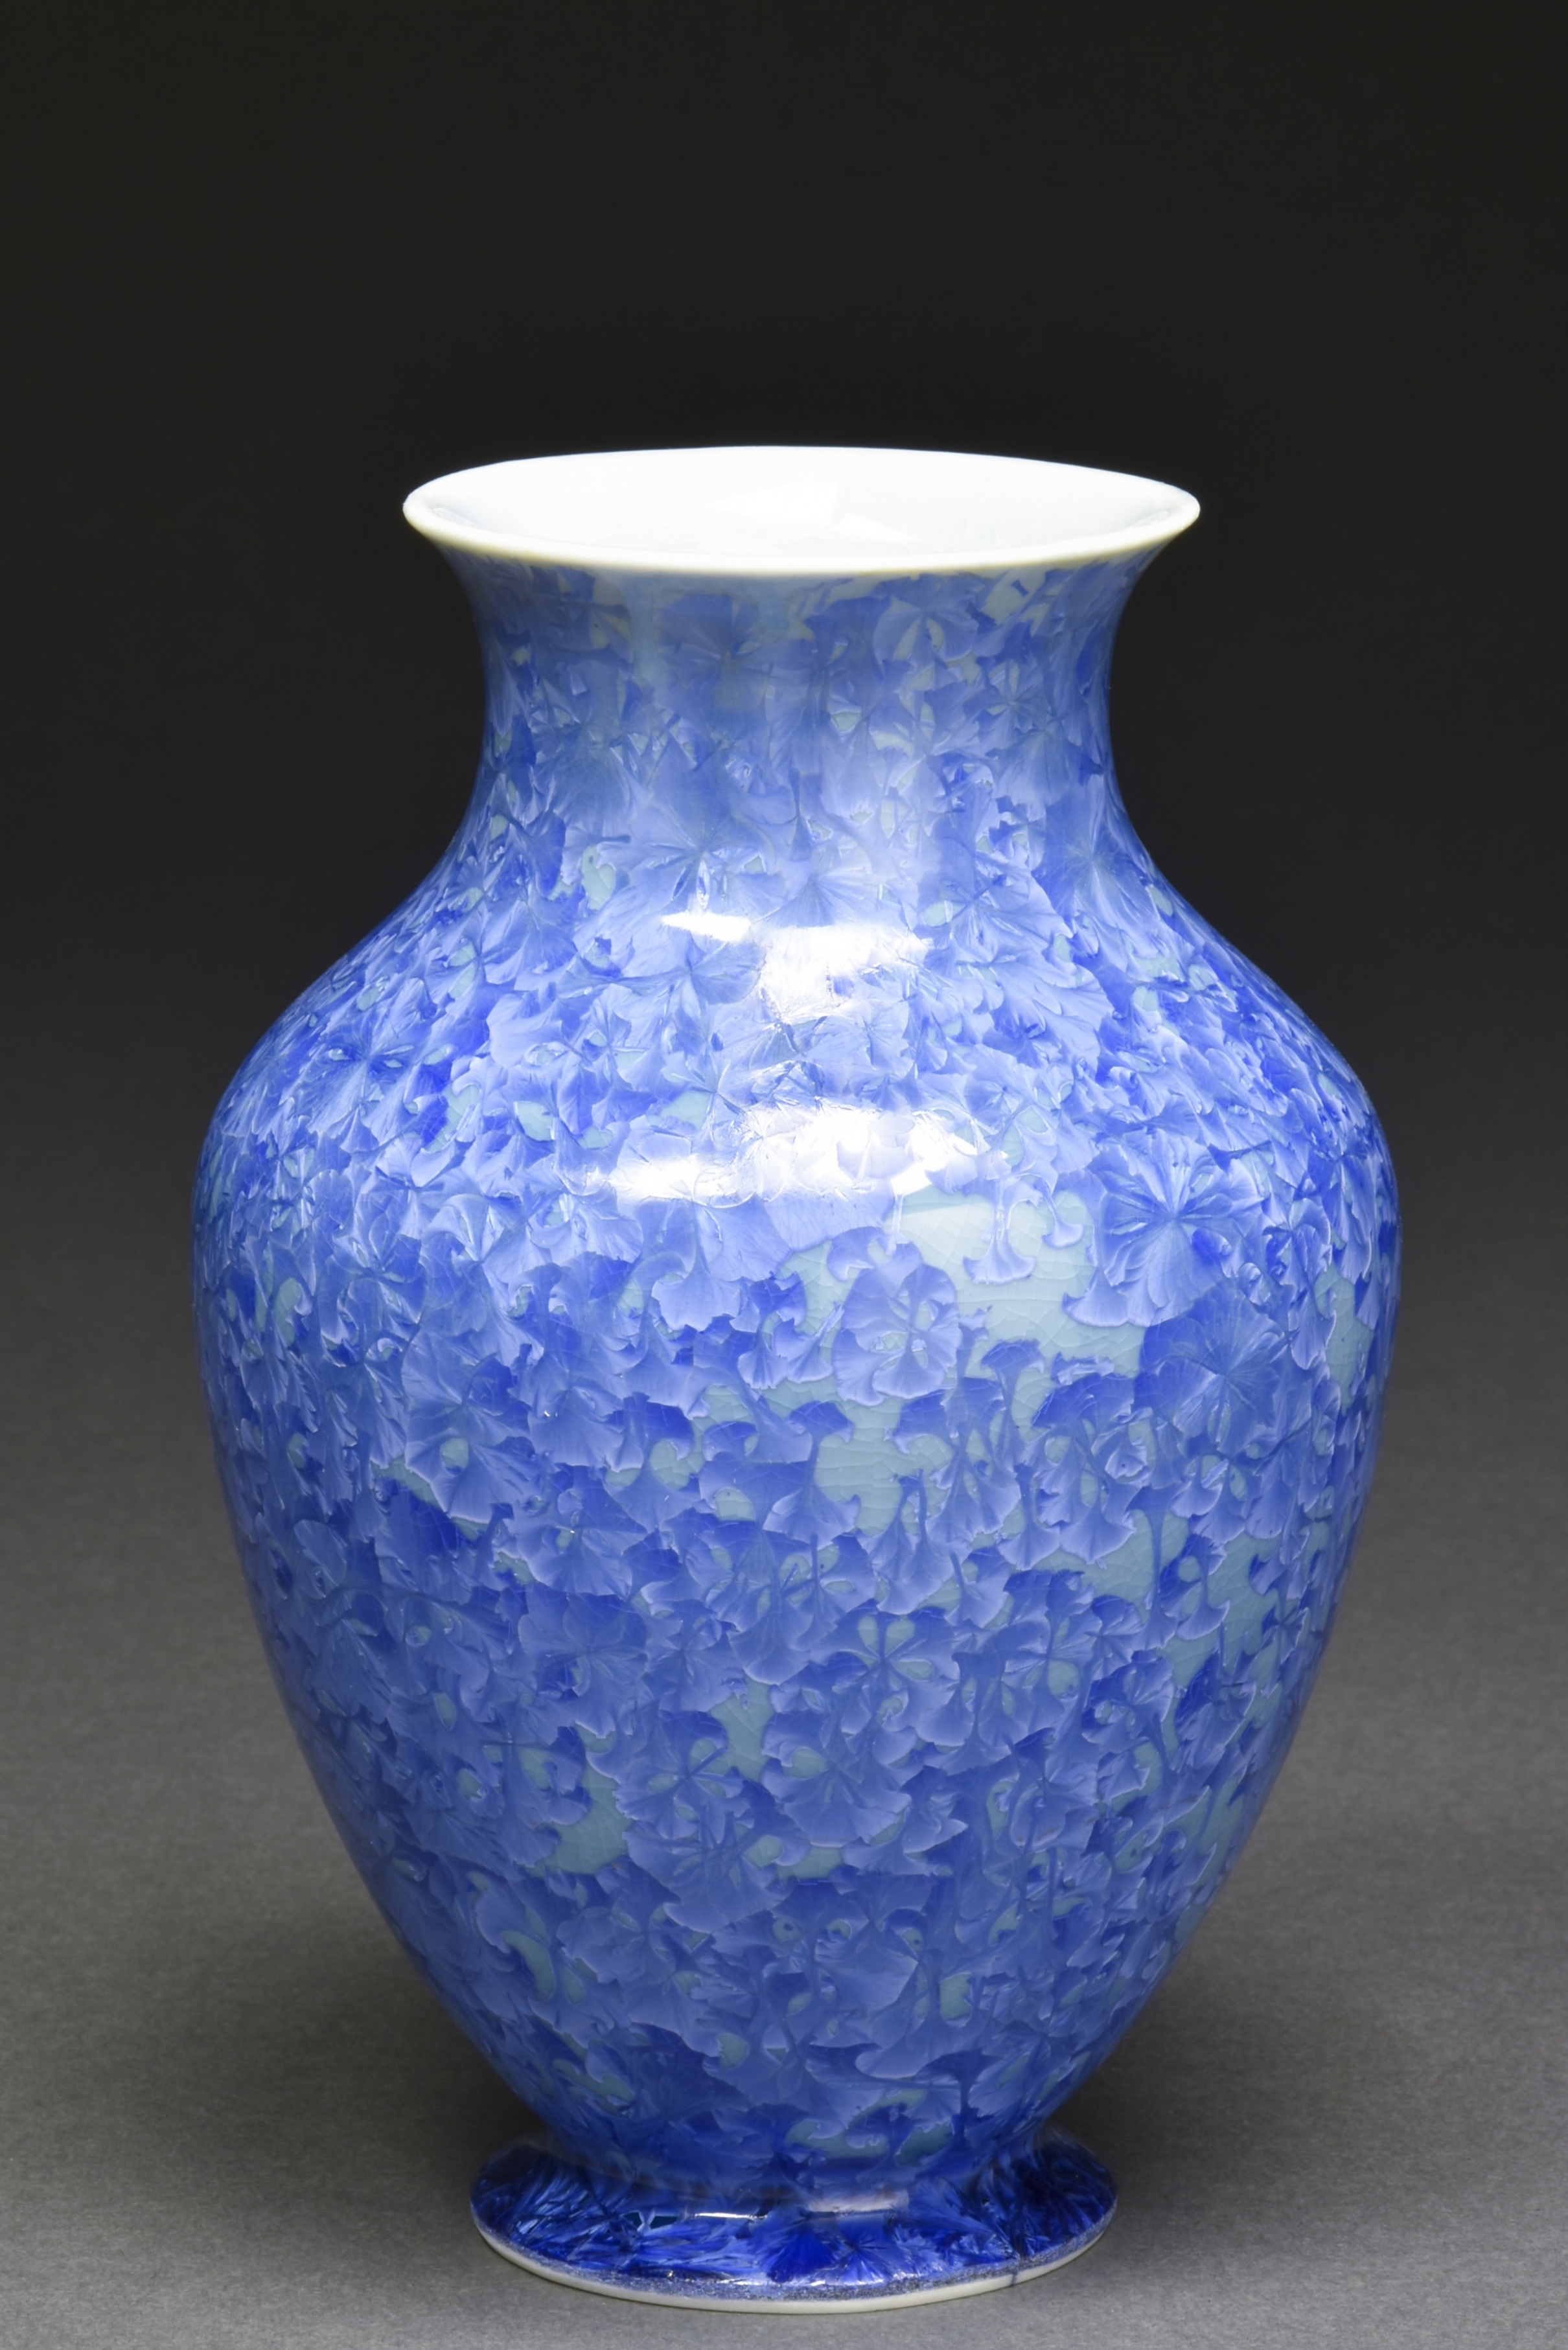 Crystalline Glazed Small Vase